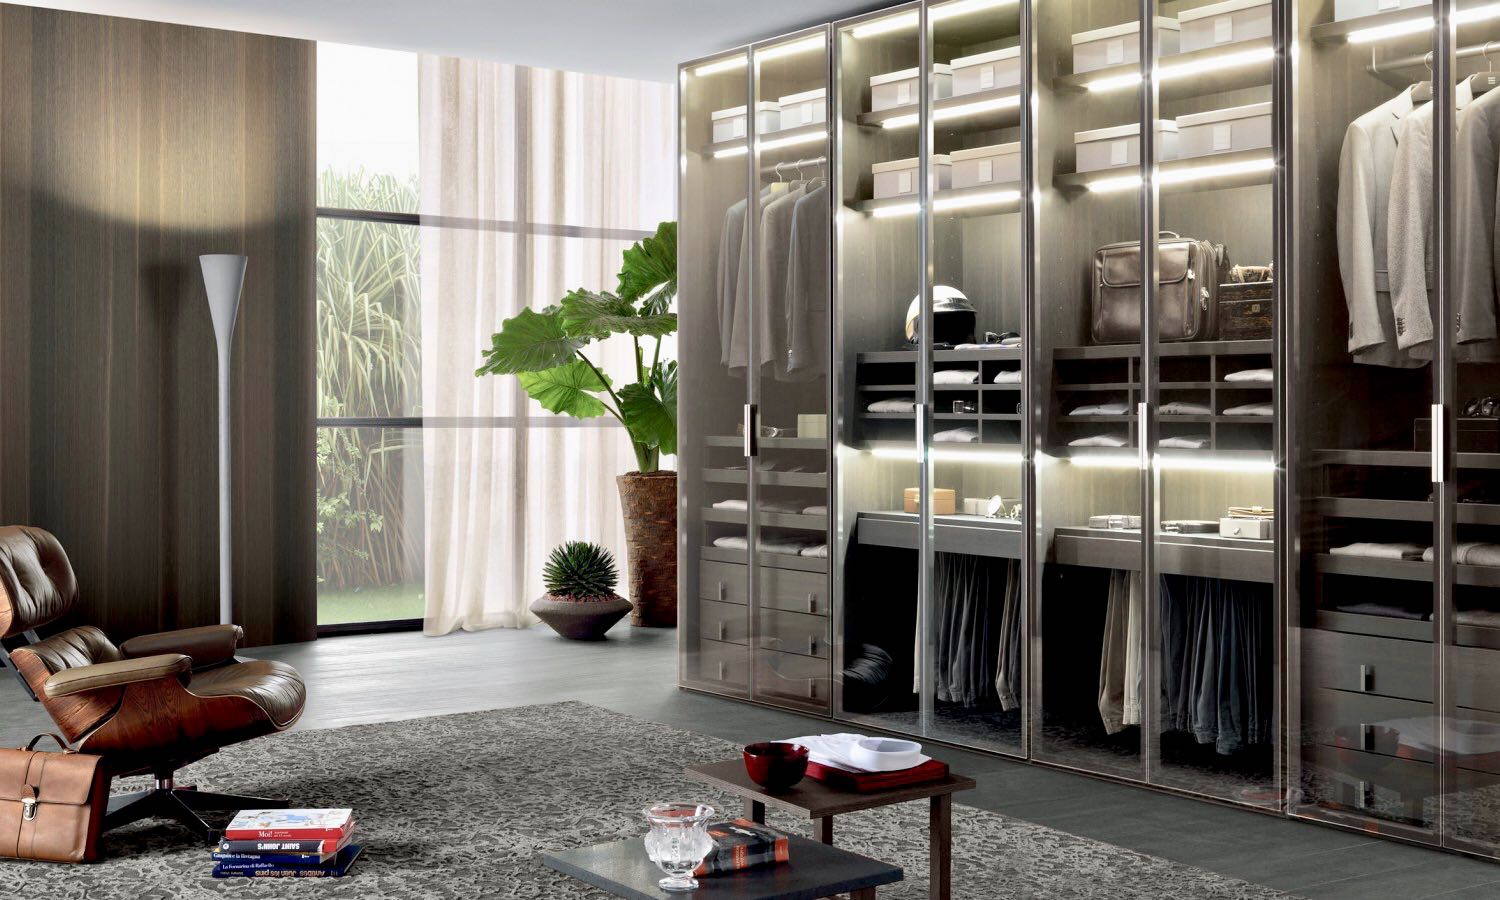 Bedroom - walk in closets - armchairs